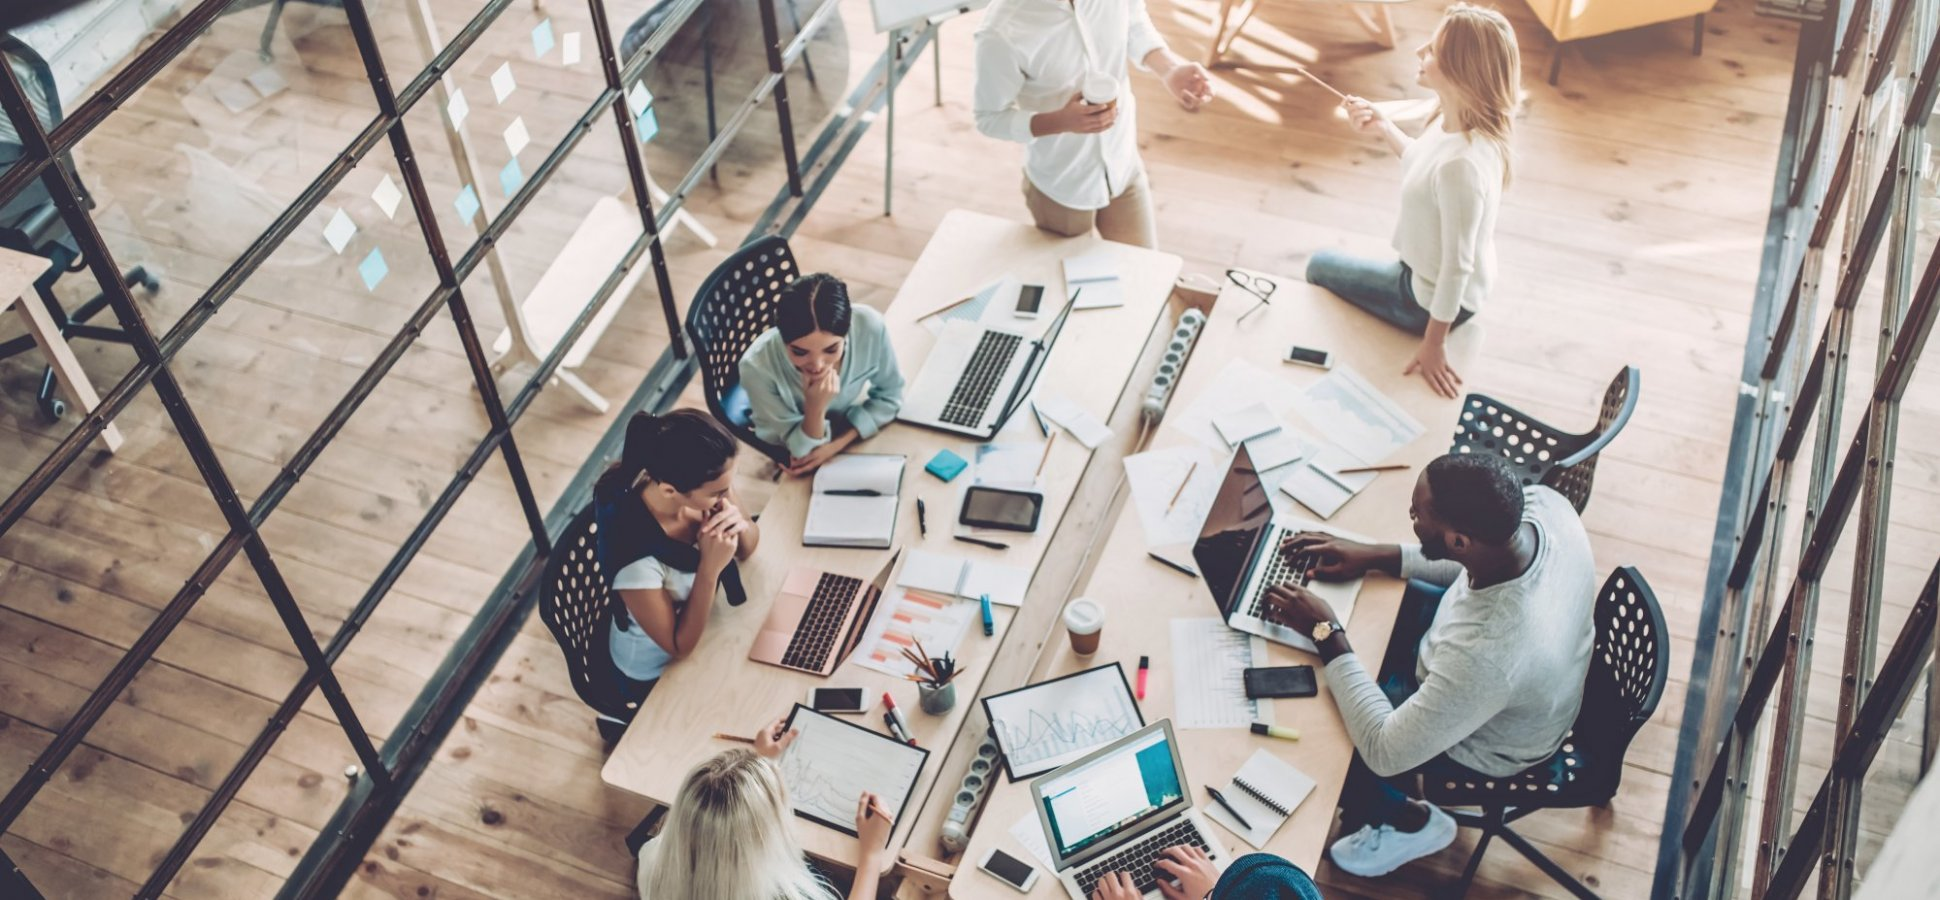 The Rise of the Coworking Space in the Gig Economy